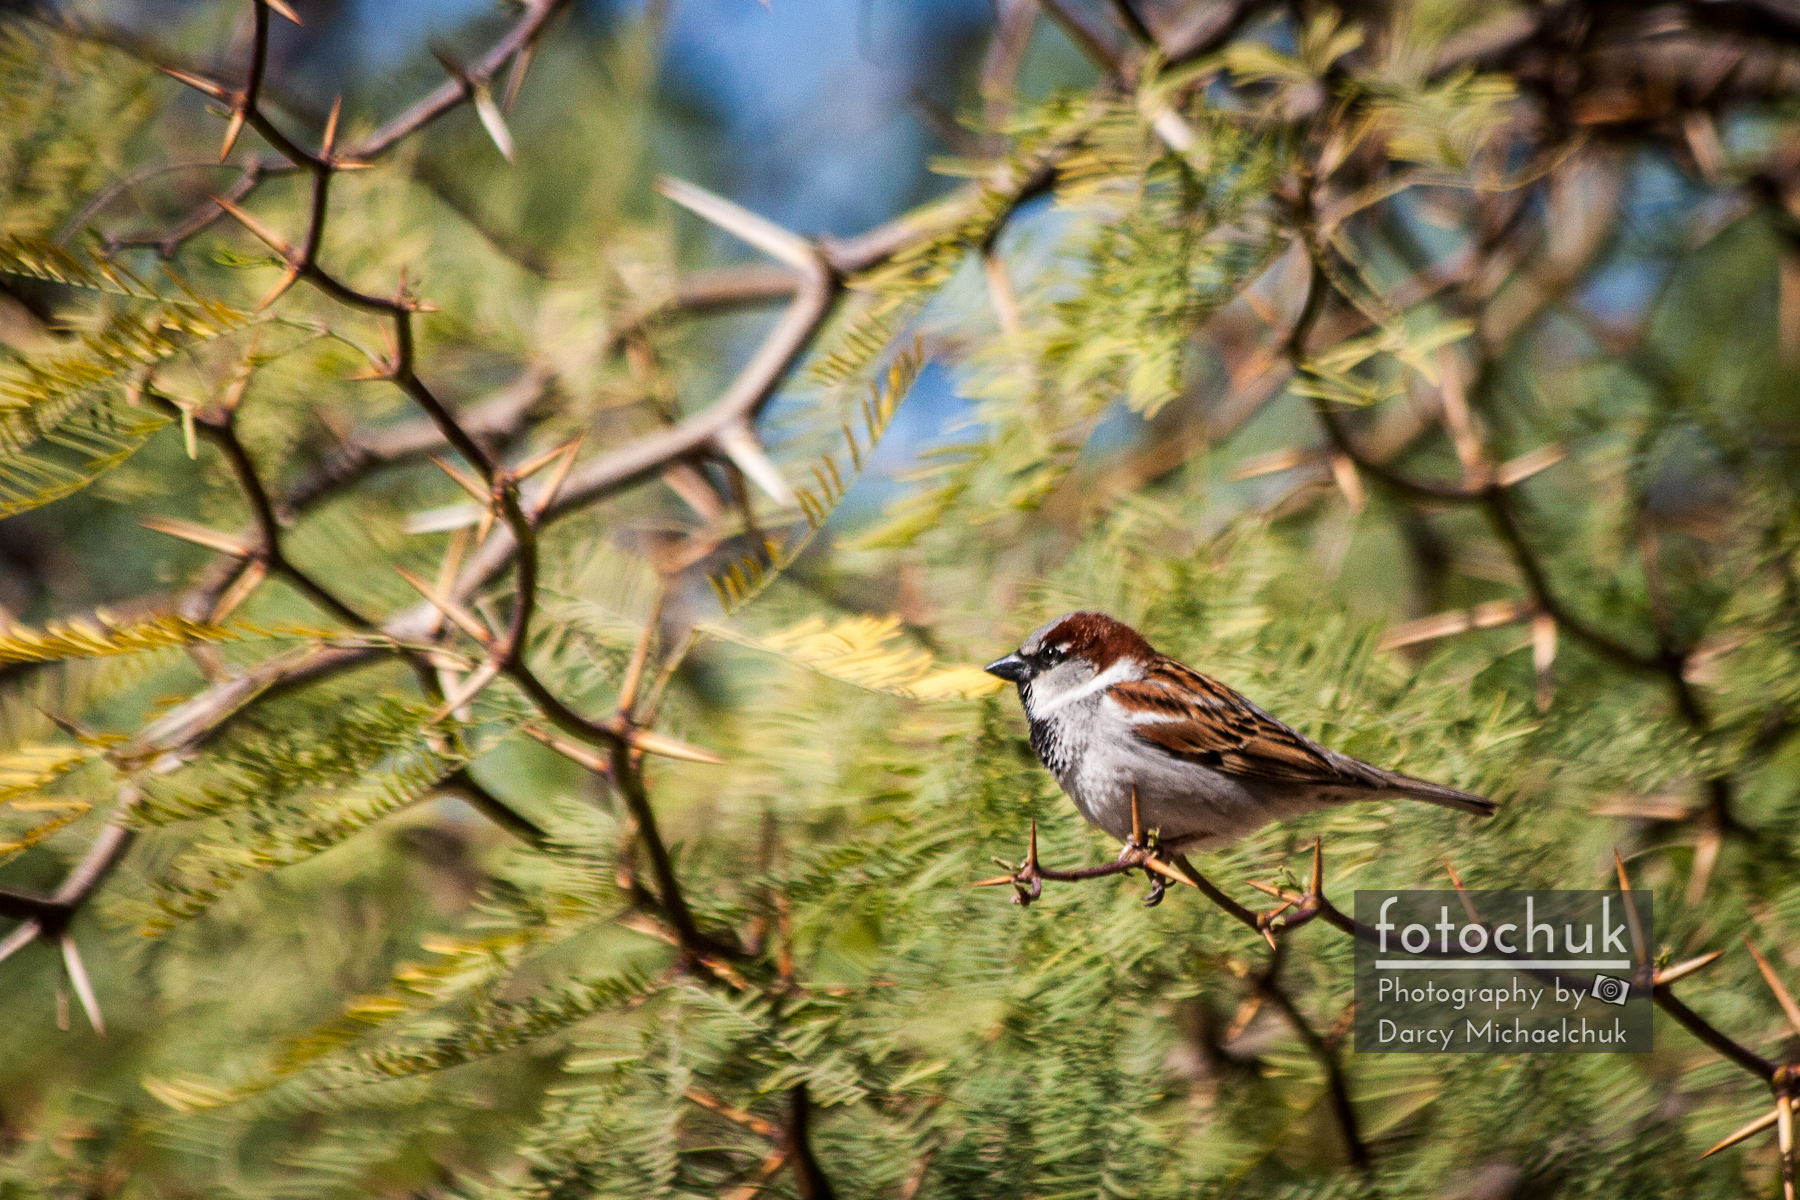 Finch in Swaying Branches